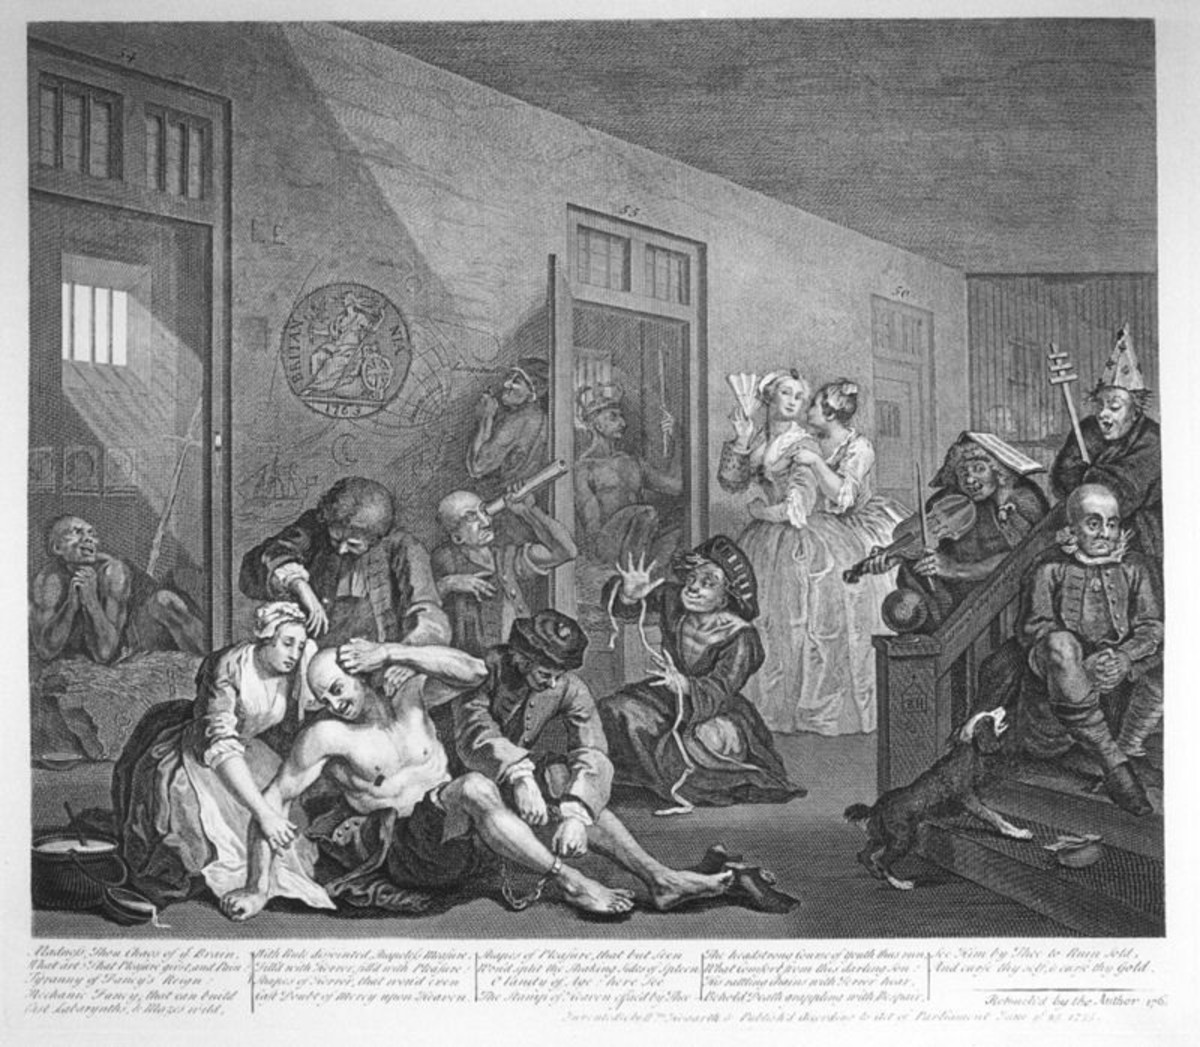 """The Hospital of St. Mary of Bethlehem was established in London in 1247 as a hospice. It later became the Hospital of Bethlem. Eventually known as Bedlam. The patients were known as """"lunatics."""" Public Domain,"""